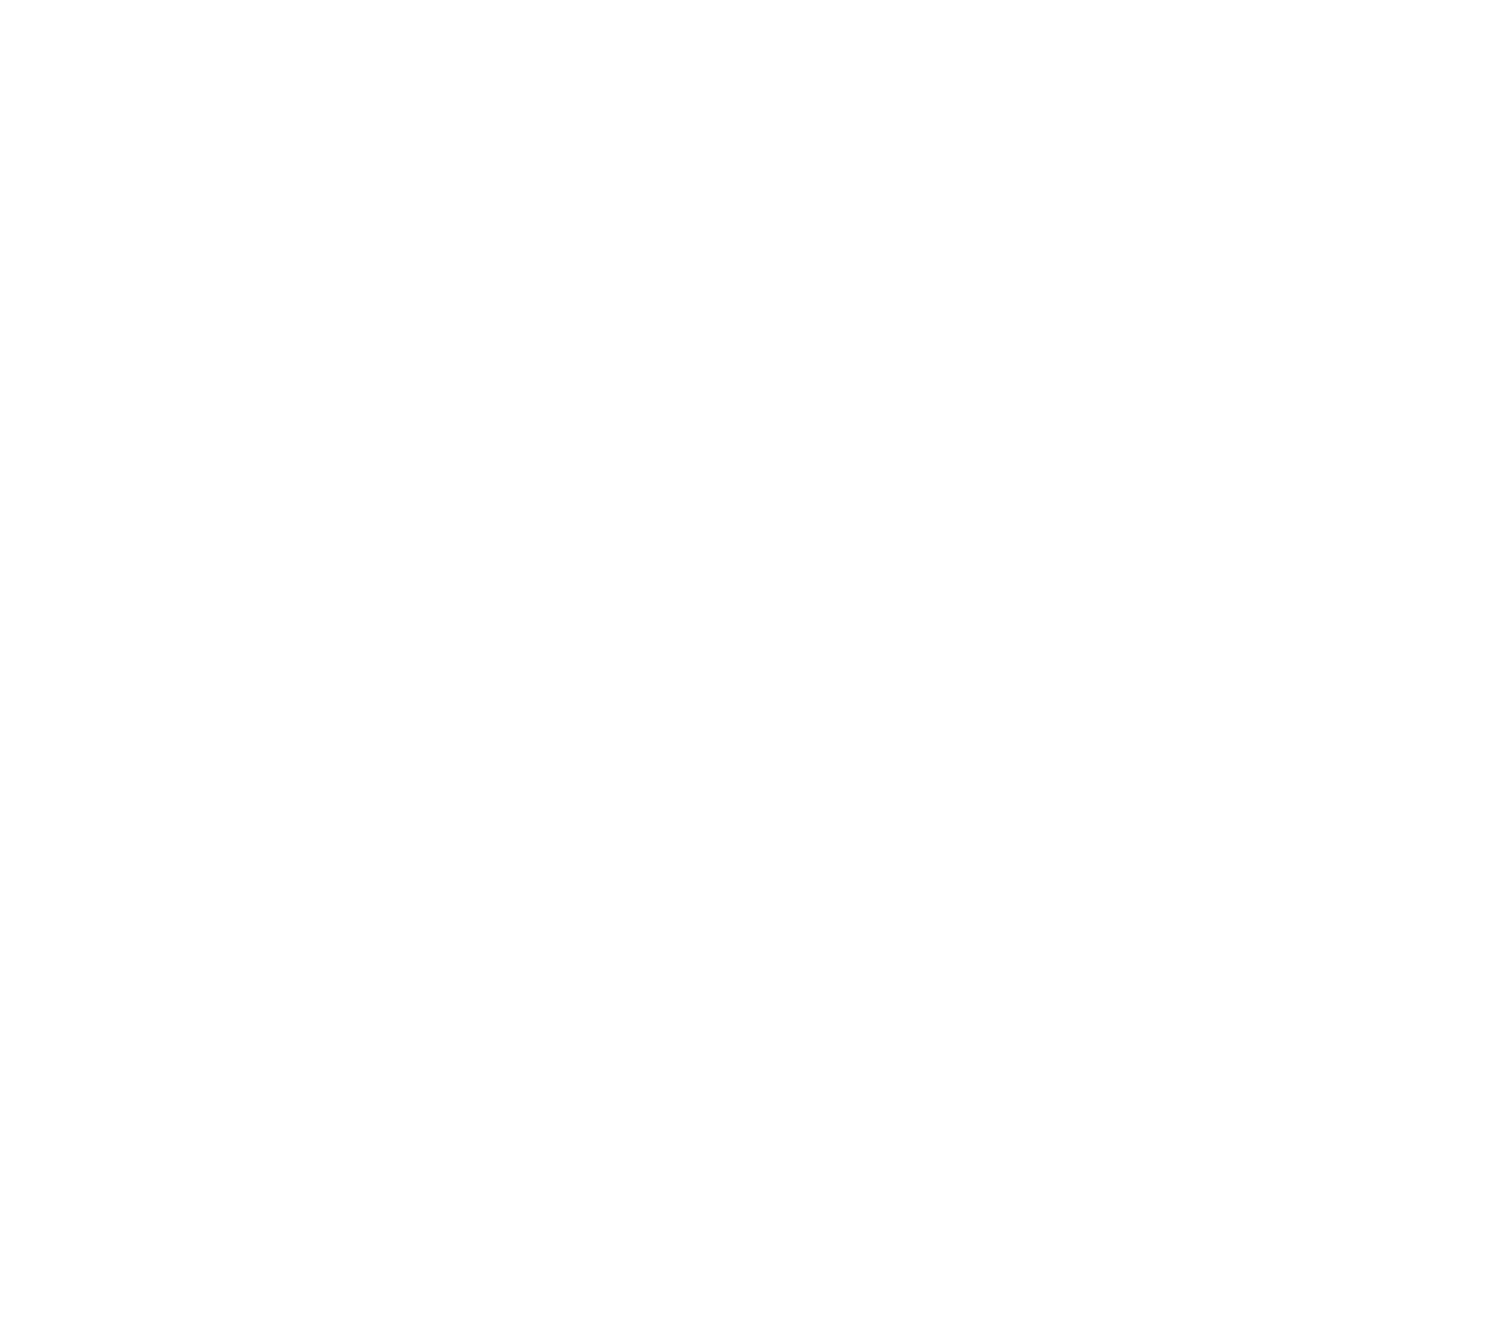 ILOVEPRODUCING